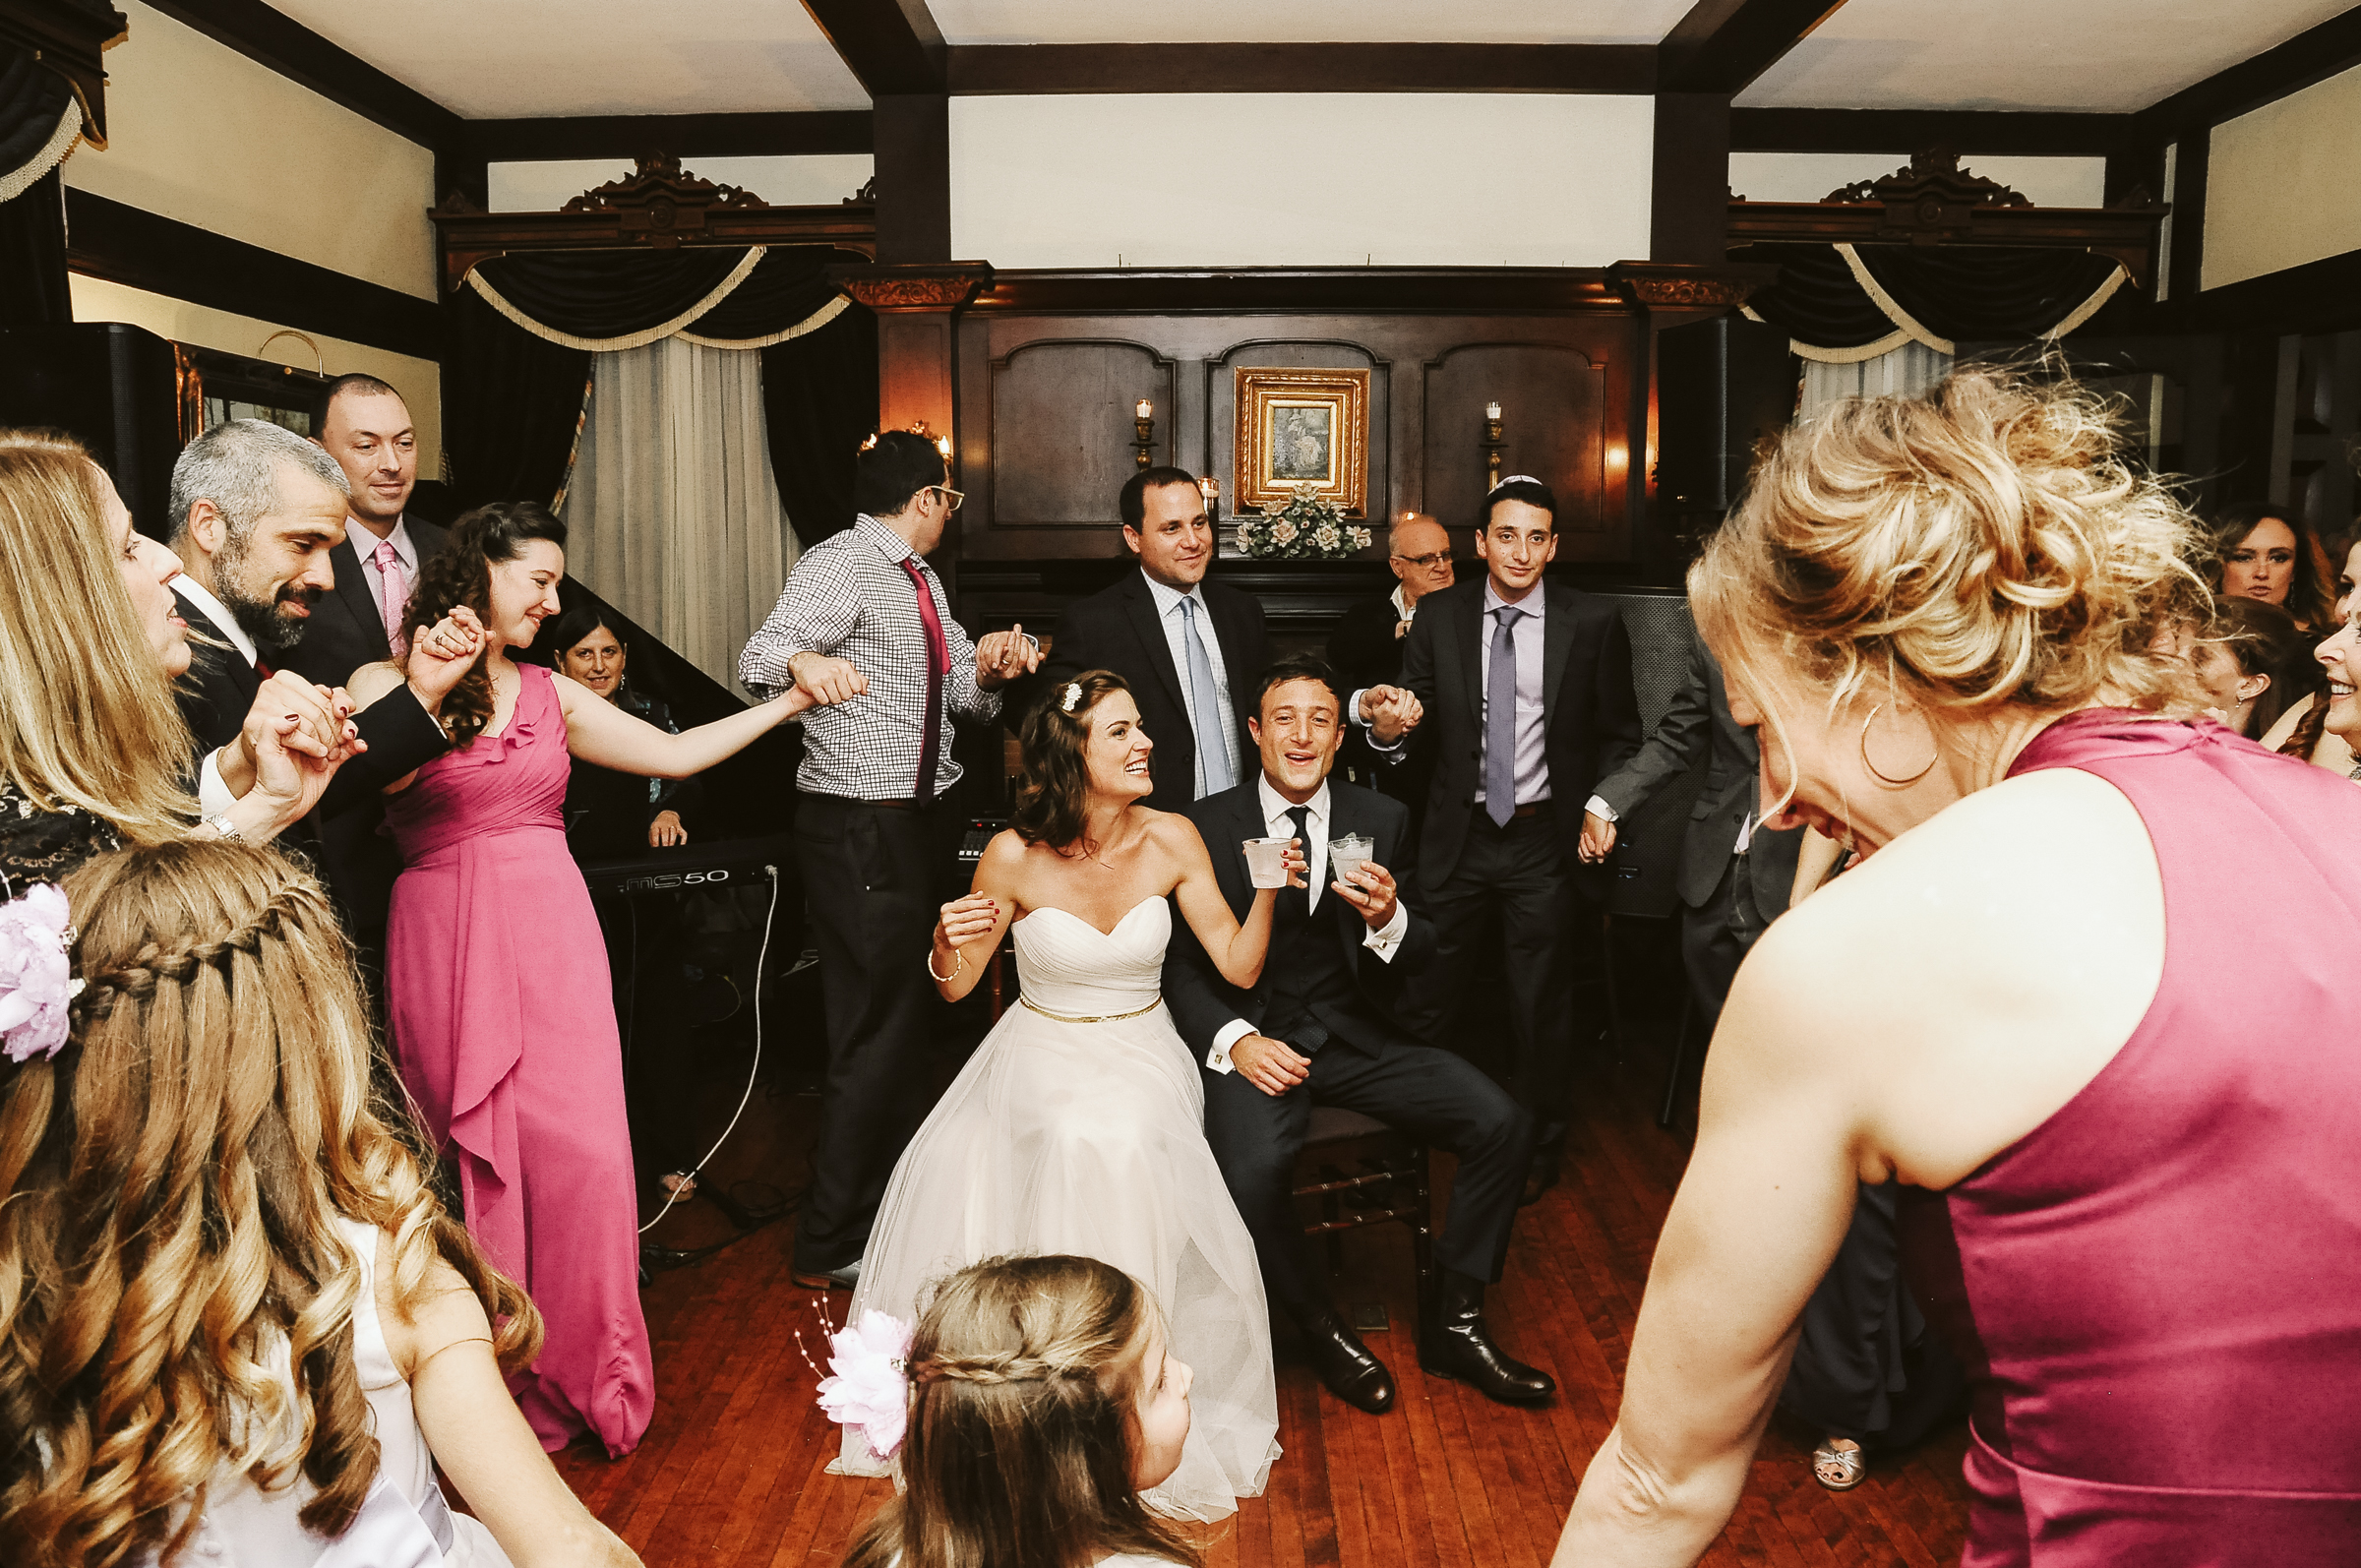 Jen and Drew's Wedding Edited 2019 web-80.jpg